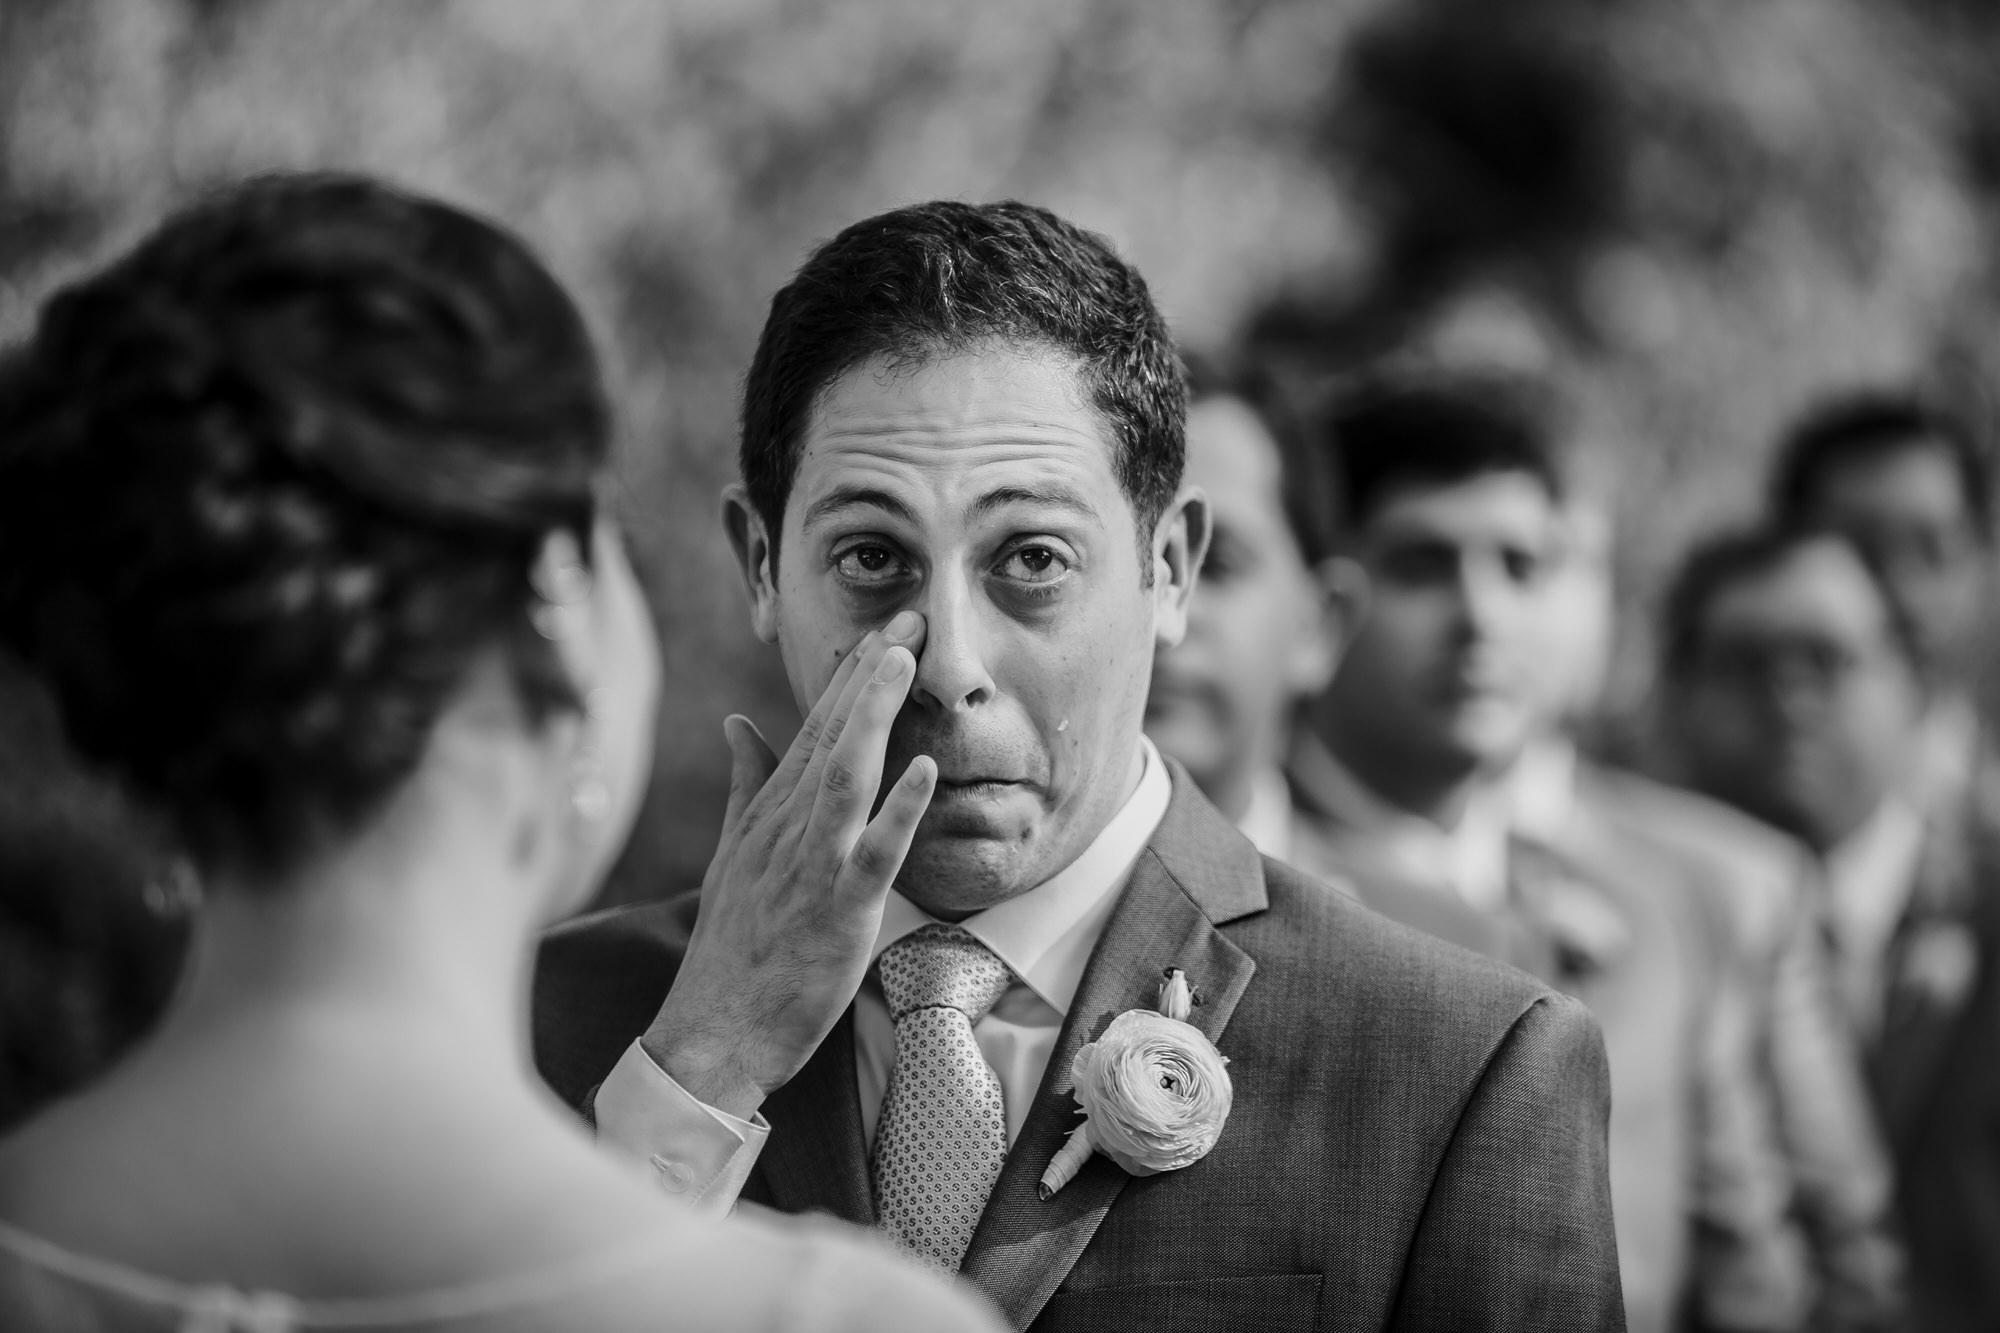 Emotional groom at ceremony - photo by Ken Pak